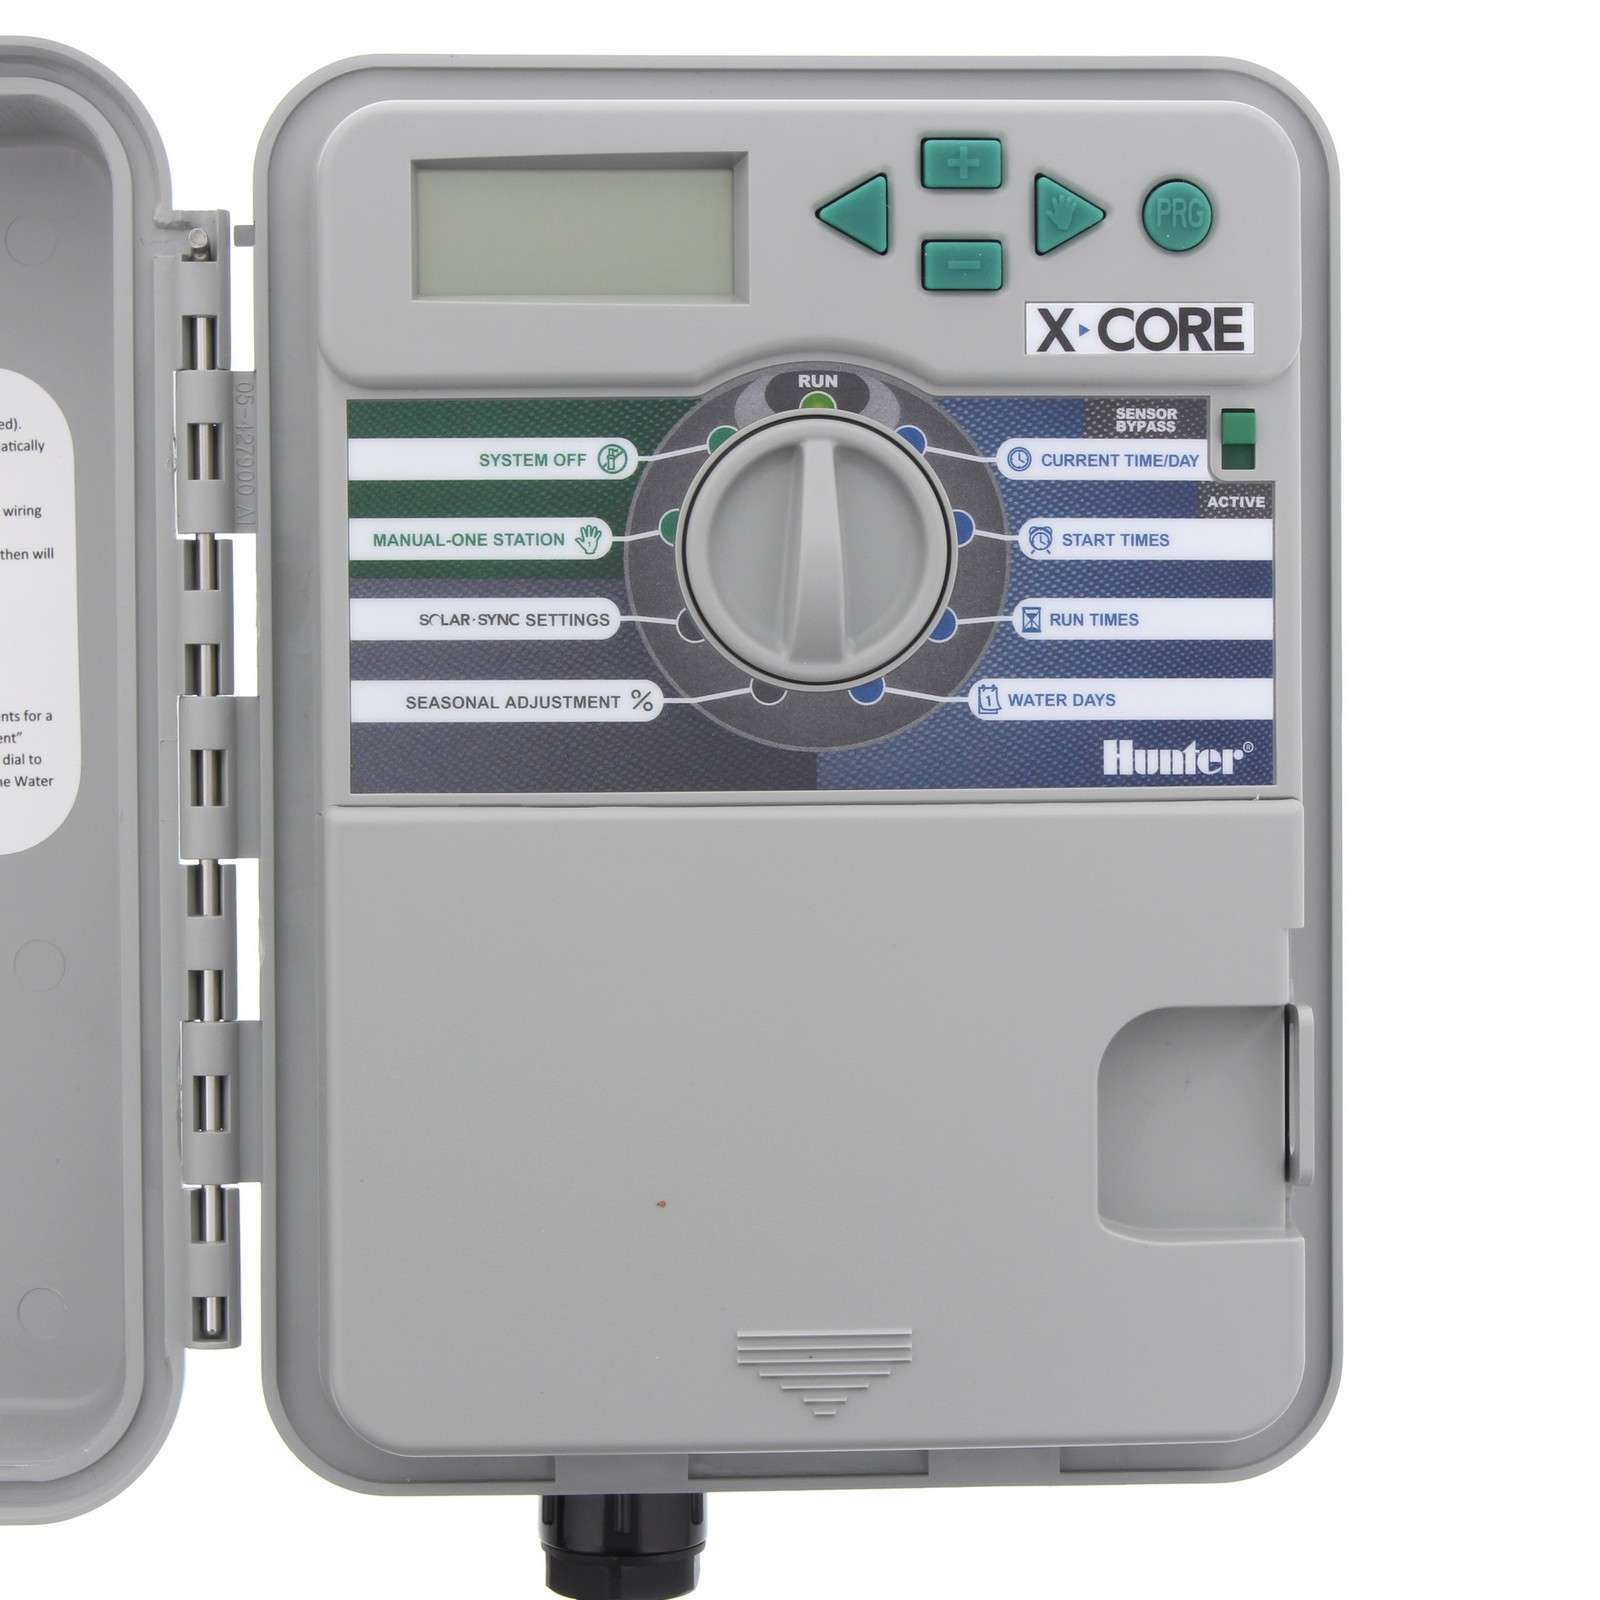 Hunter X Core 6 Station Outdoor Controller Xc601 Smart Solar Sync Technology Buy Garden Care Watering 611698146378